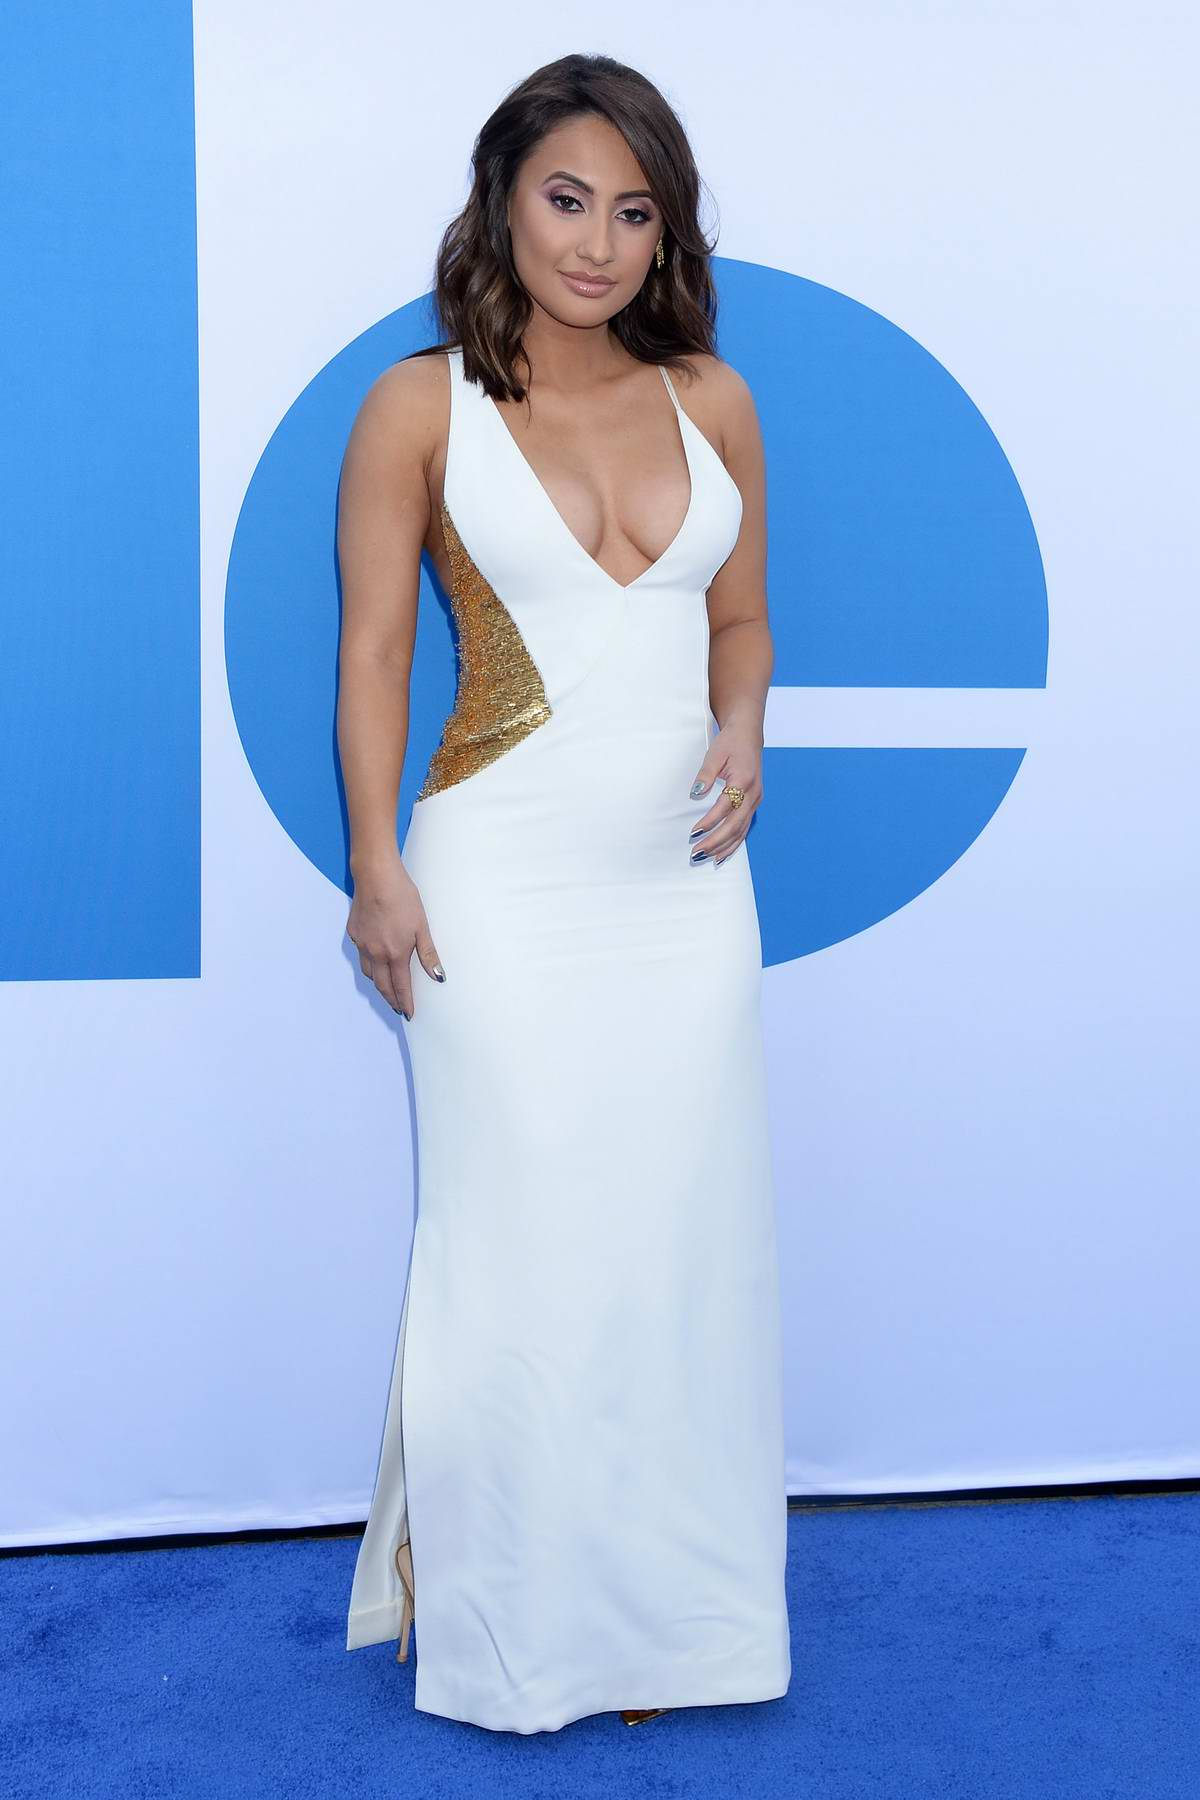 Francia Raisa attends 'Little' Hollywood Premiere at Regency Village Theater in Westwood, California